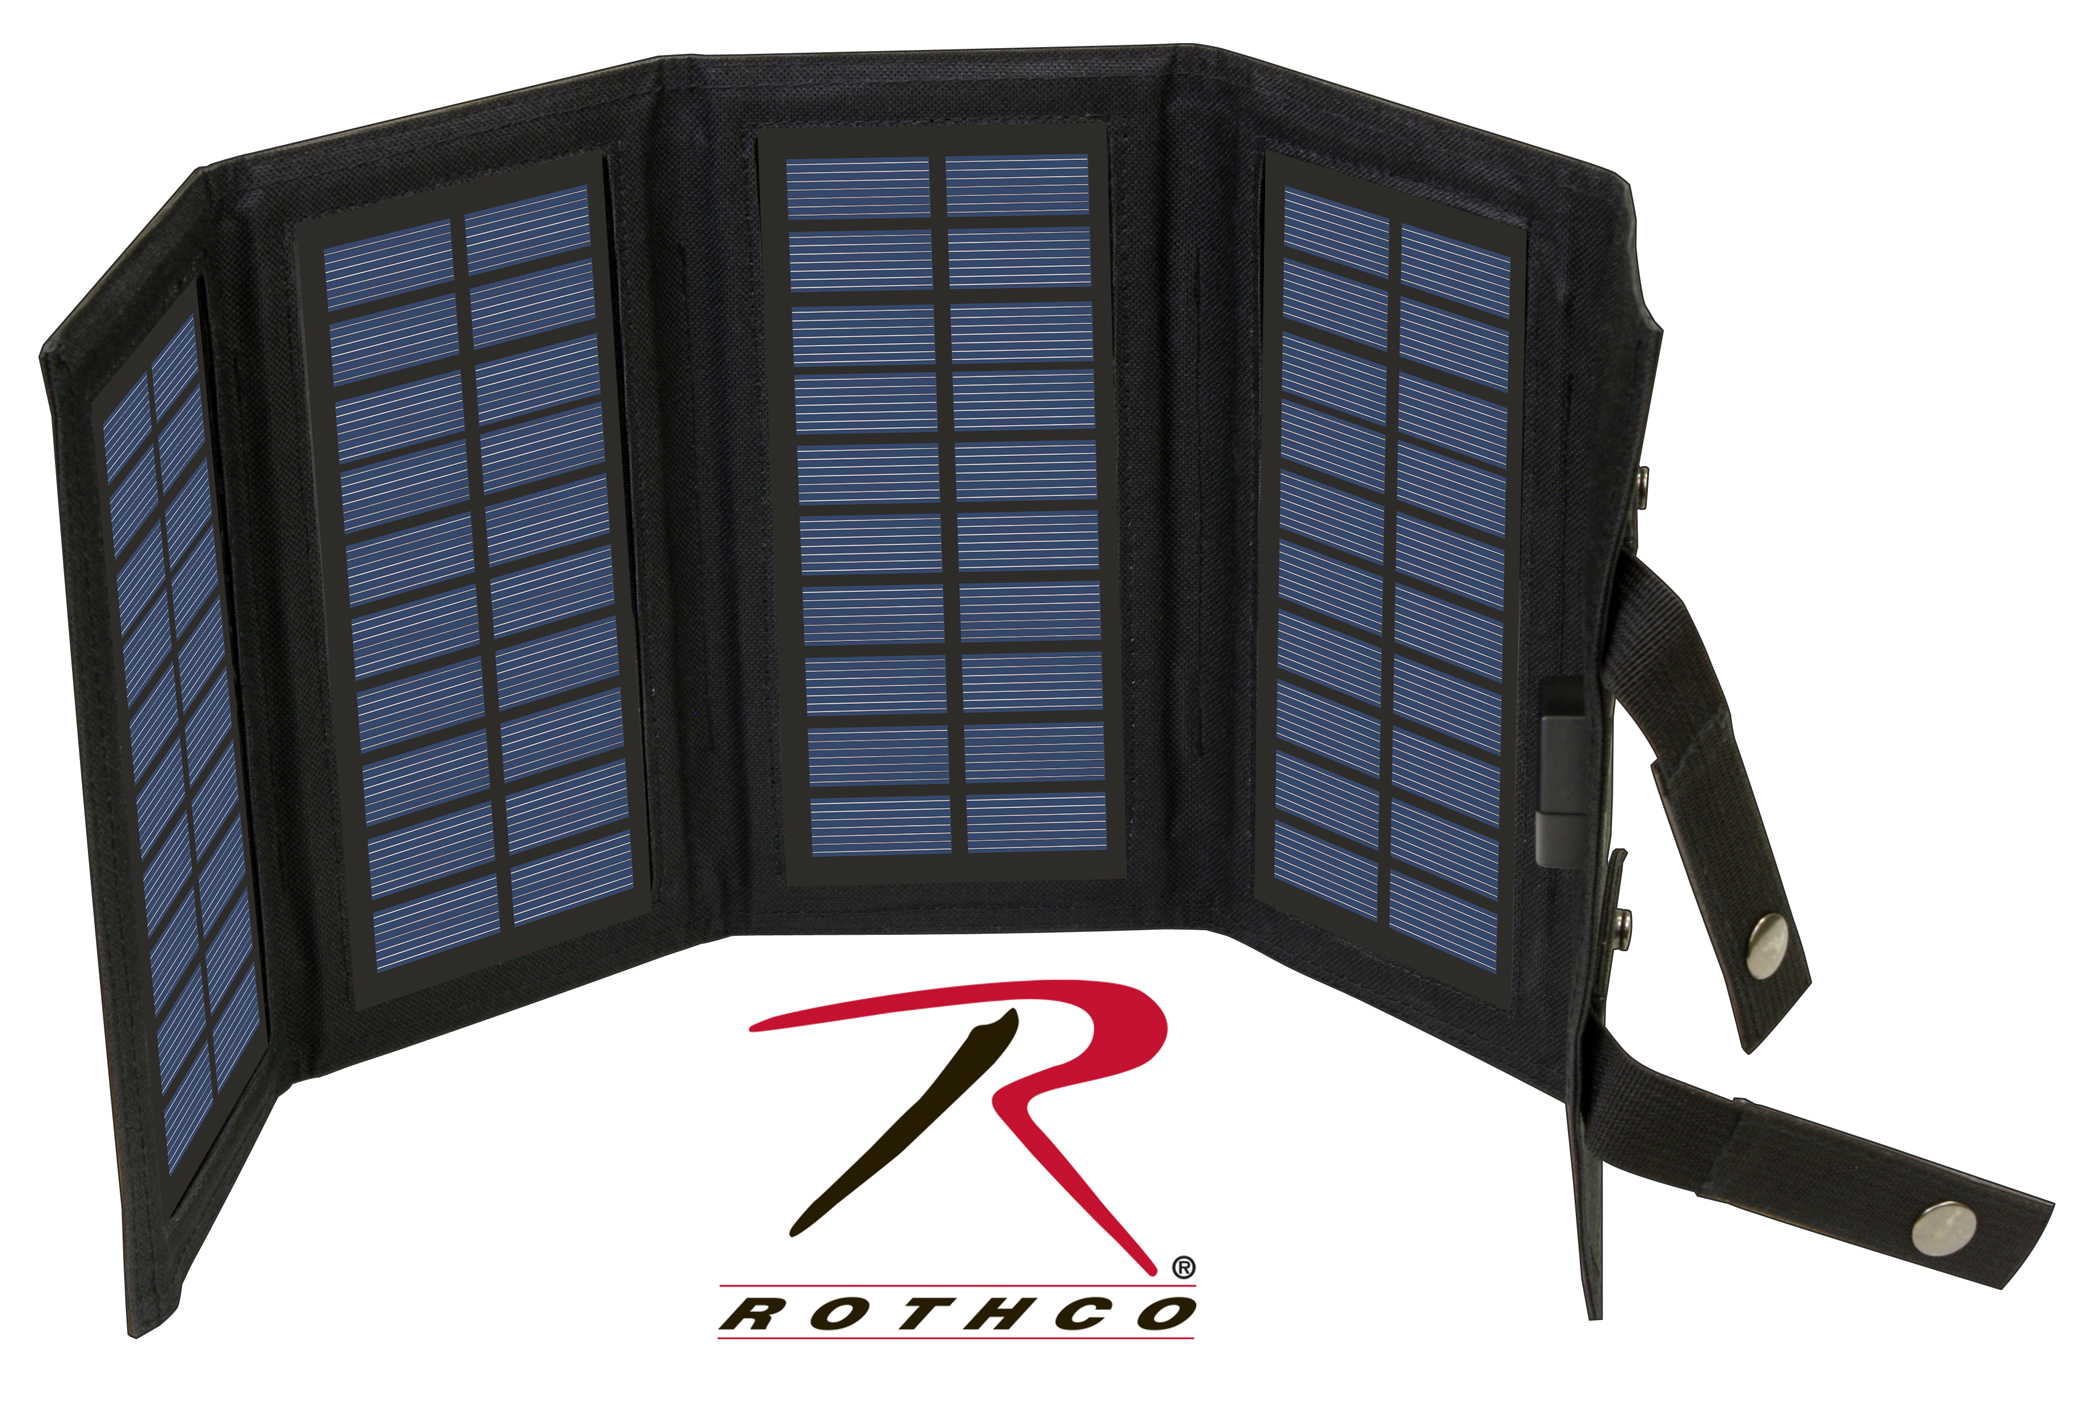 Nordic Components and Rothco Solar Panel Unboxing